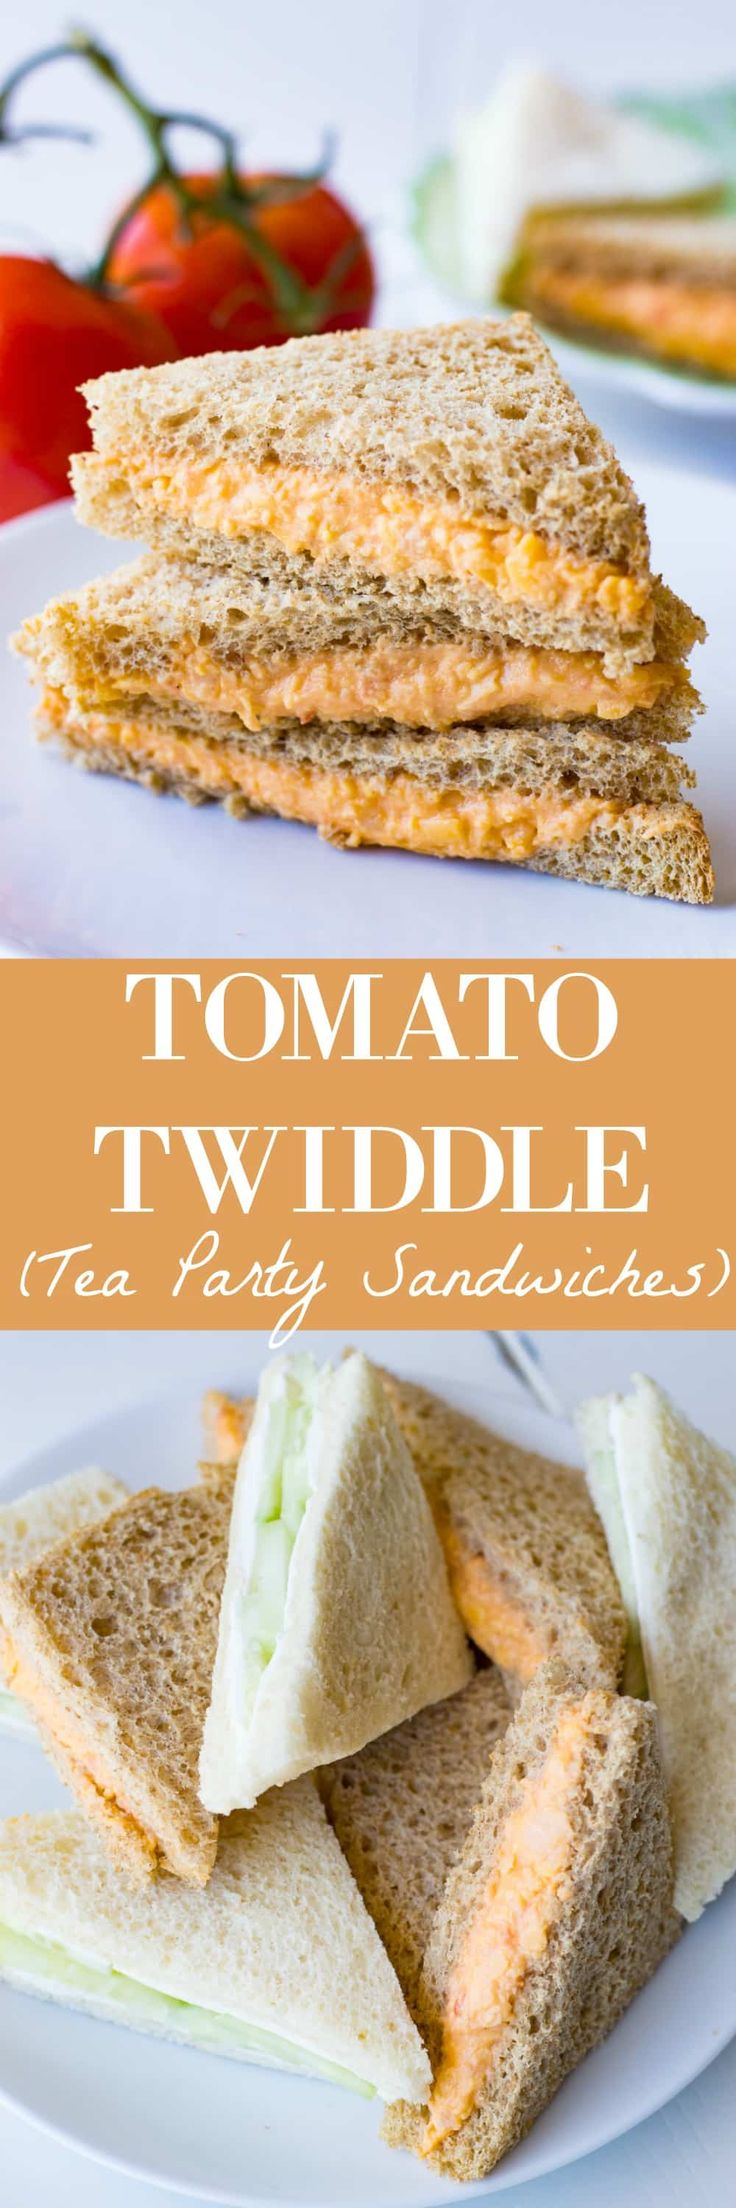 Tomato Twiddle Sandwiches (tomato, cheese and onion) from House of Yumm